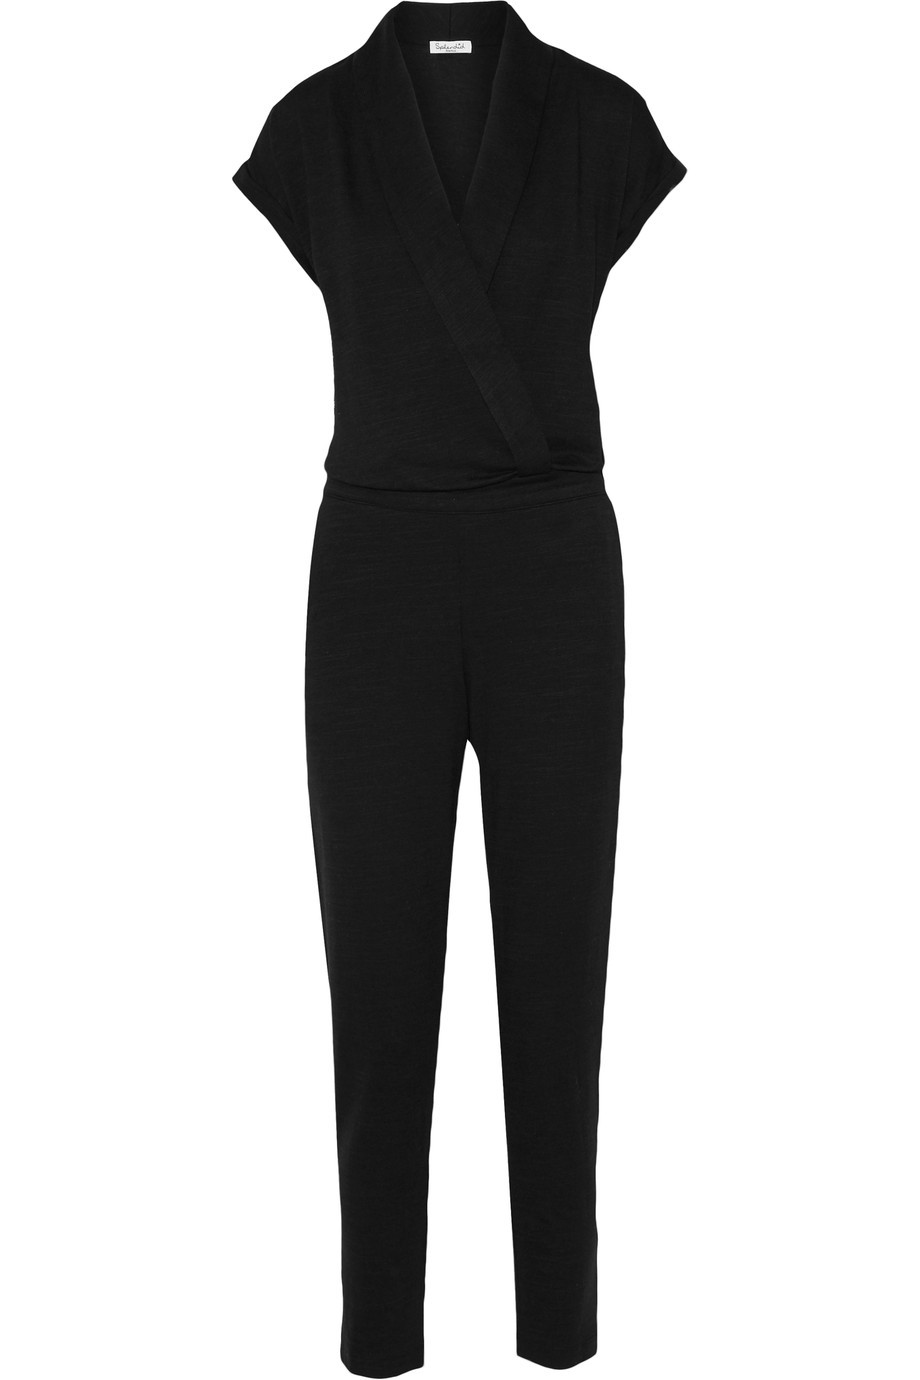 Wrap Effect Stretch Twill Jumpsuit Black - length: standard; neckline: low v-neck; pattern: plain; hip detail: draws attention to hips; predominant colour: black; occasions: evening; fit: body skimming; fibres: polyester/polyamide - stretch; sleeve length: short sleeve; sleeve style: standard; style: jumpsuit; pattern type: fabric; texture group: jersey - stretchy/drapey; season: s/s 2016; wardrobe: event